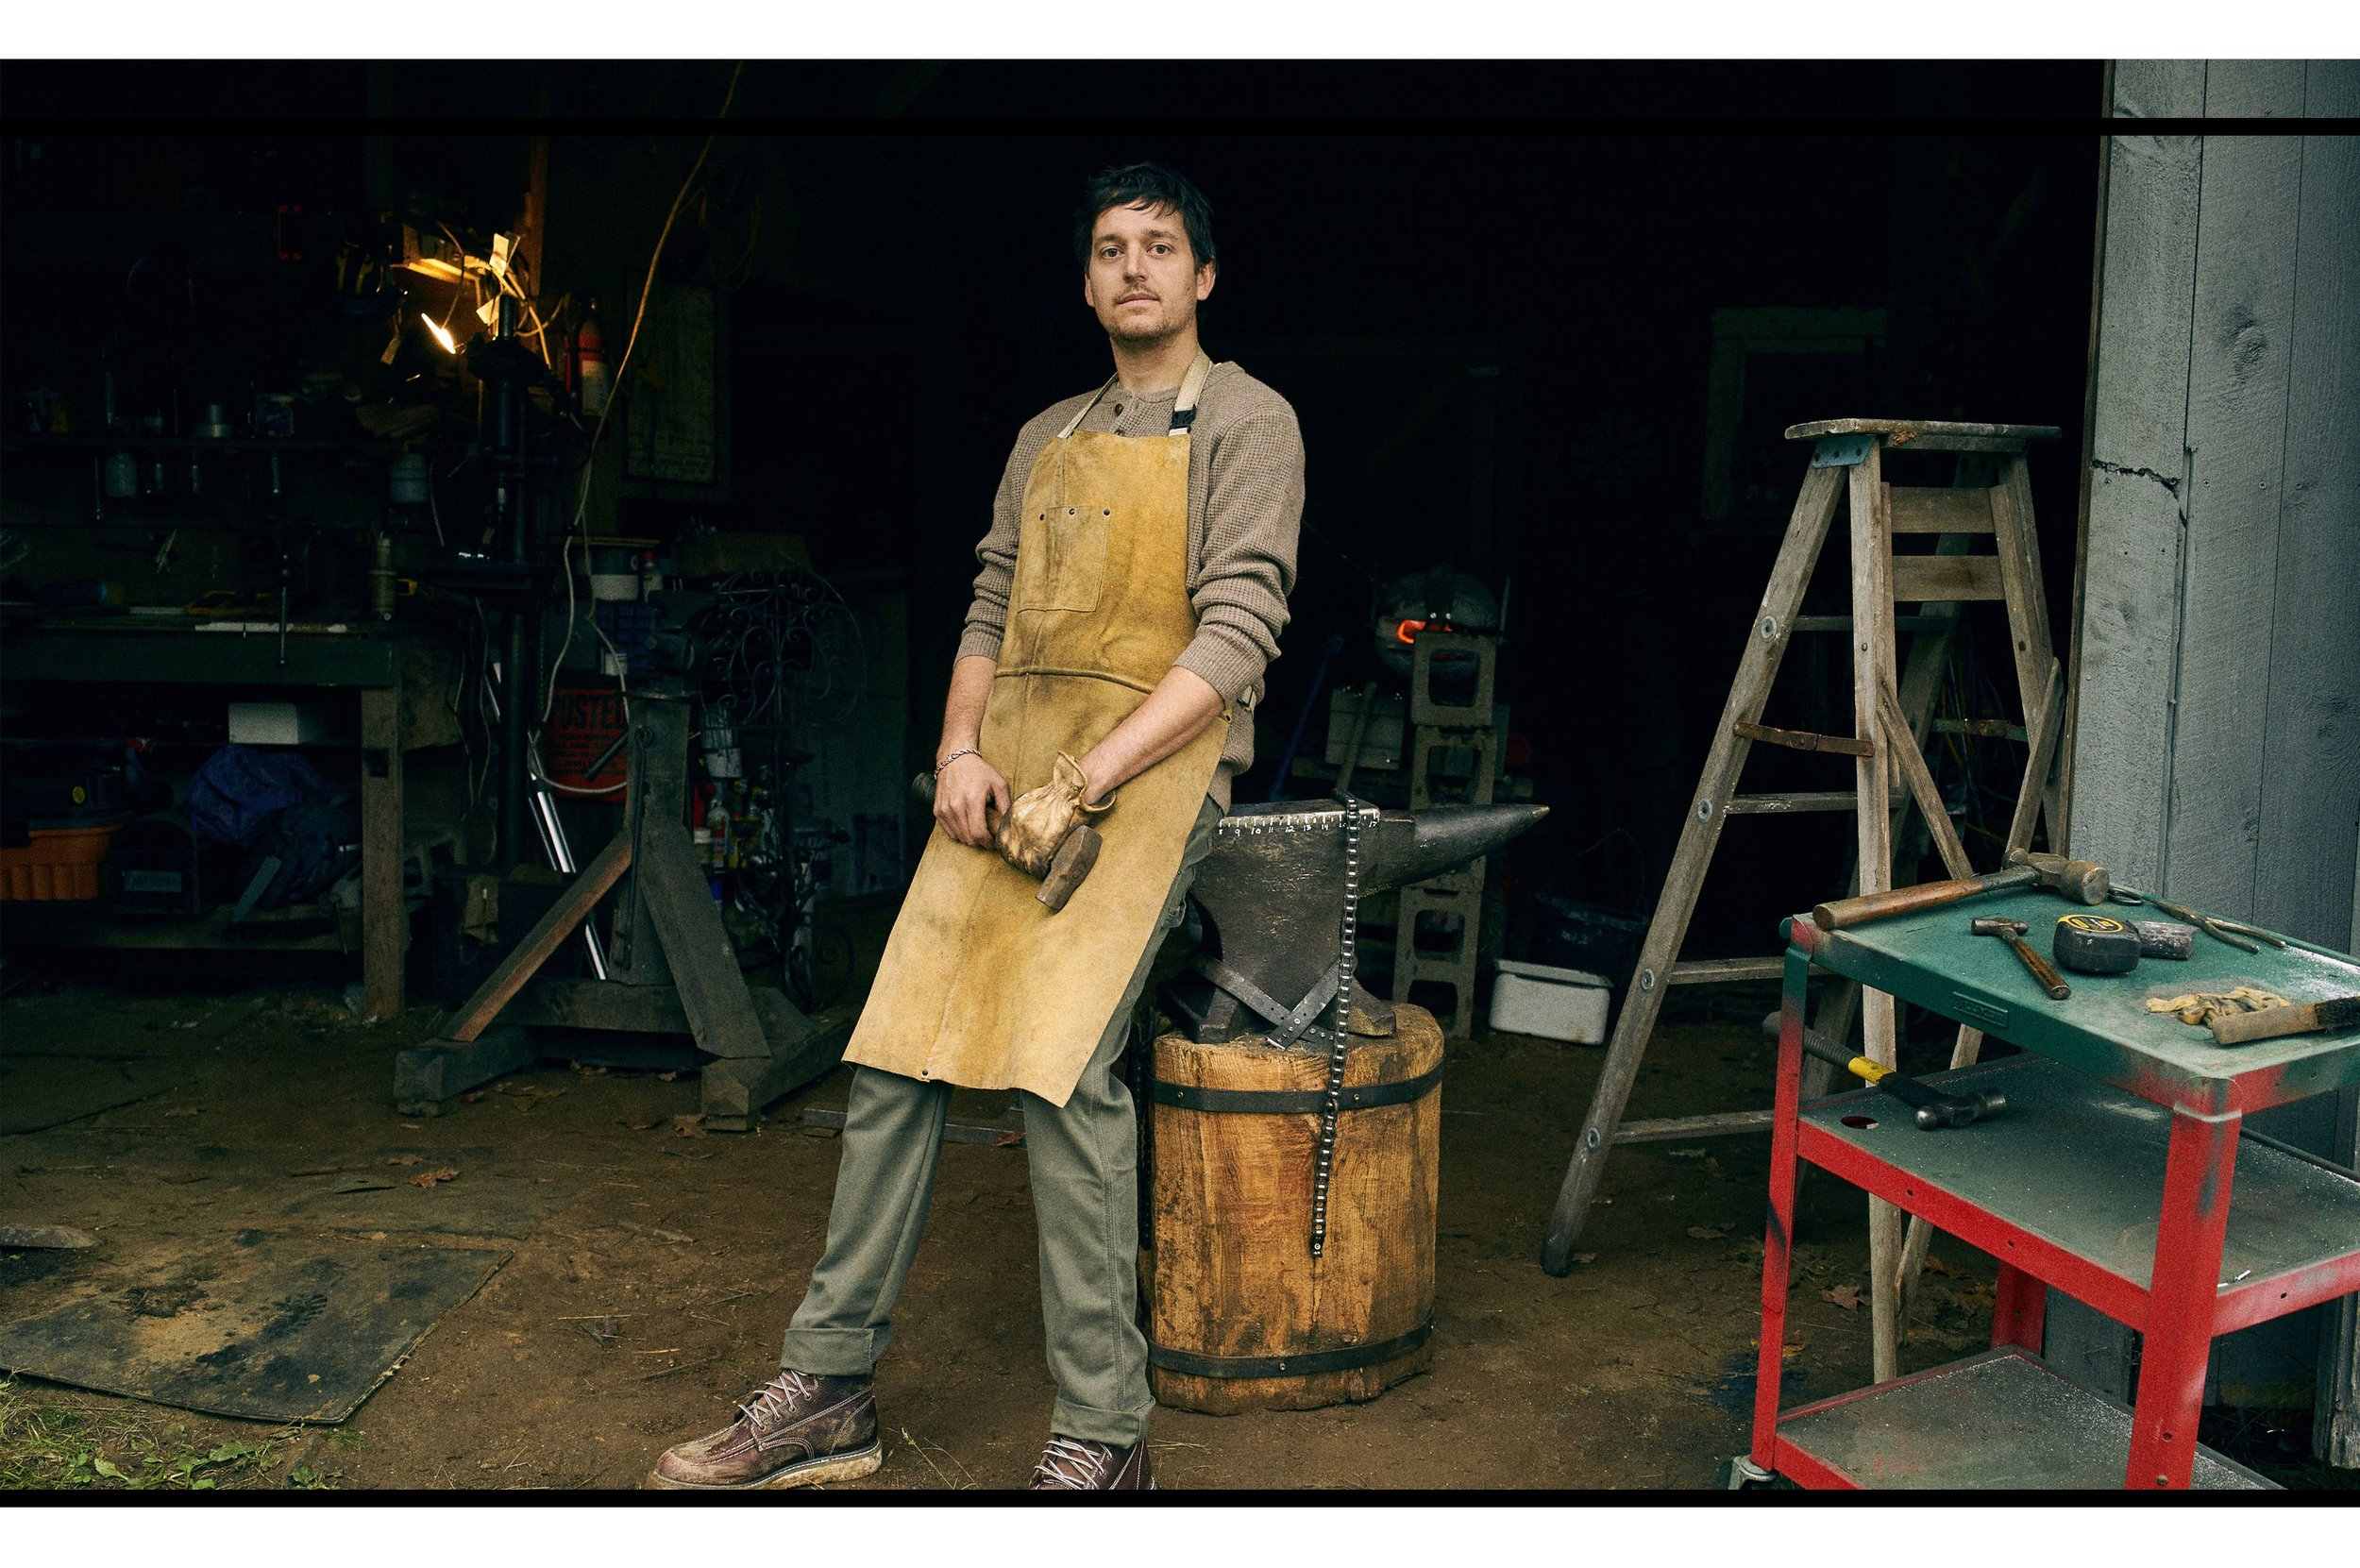 Ever Wonder what it's like to be a modern day blacksmith? Check out this feature from Brett Martin at Popular Mechanics from November 2017  here .